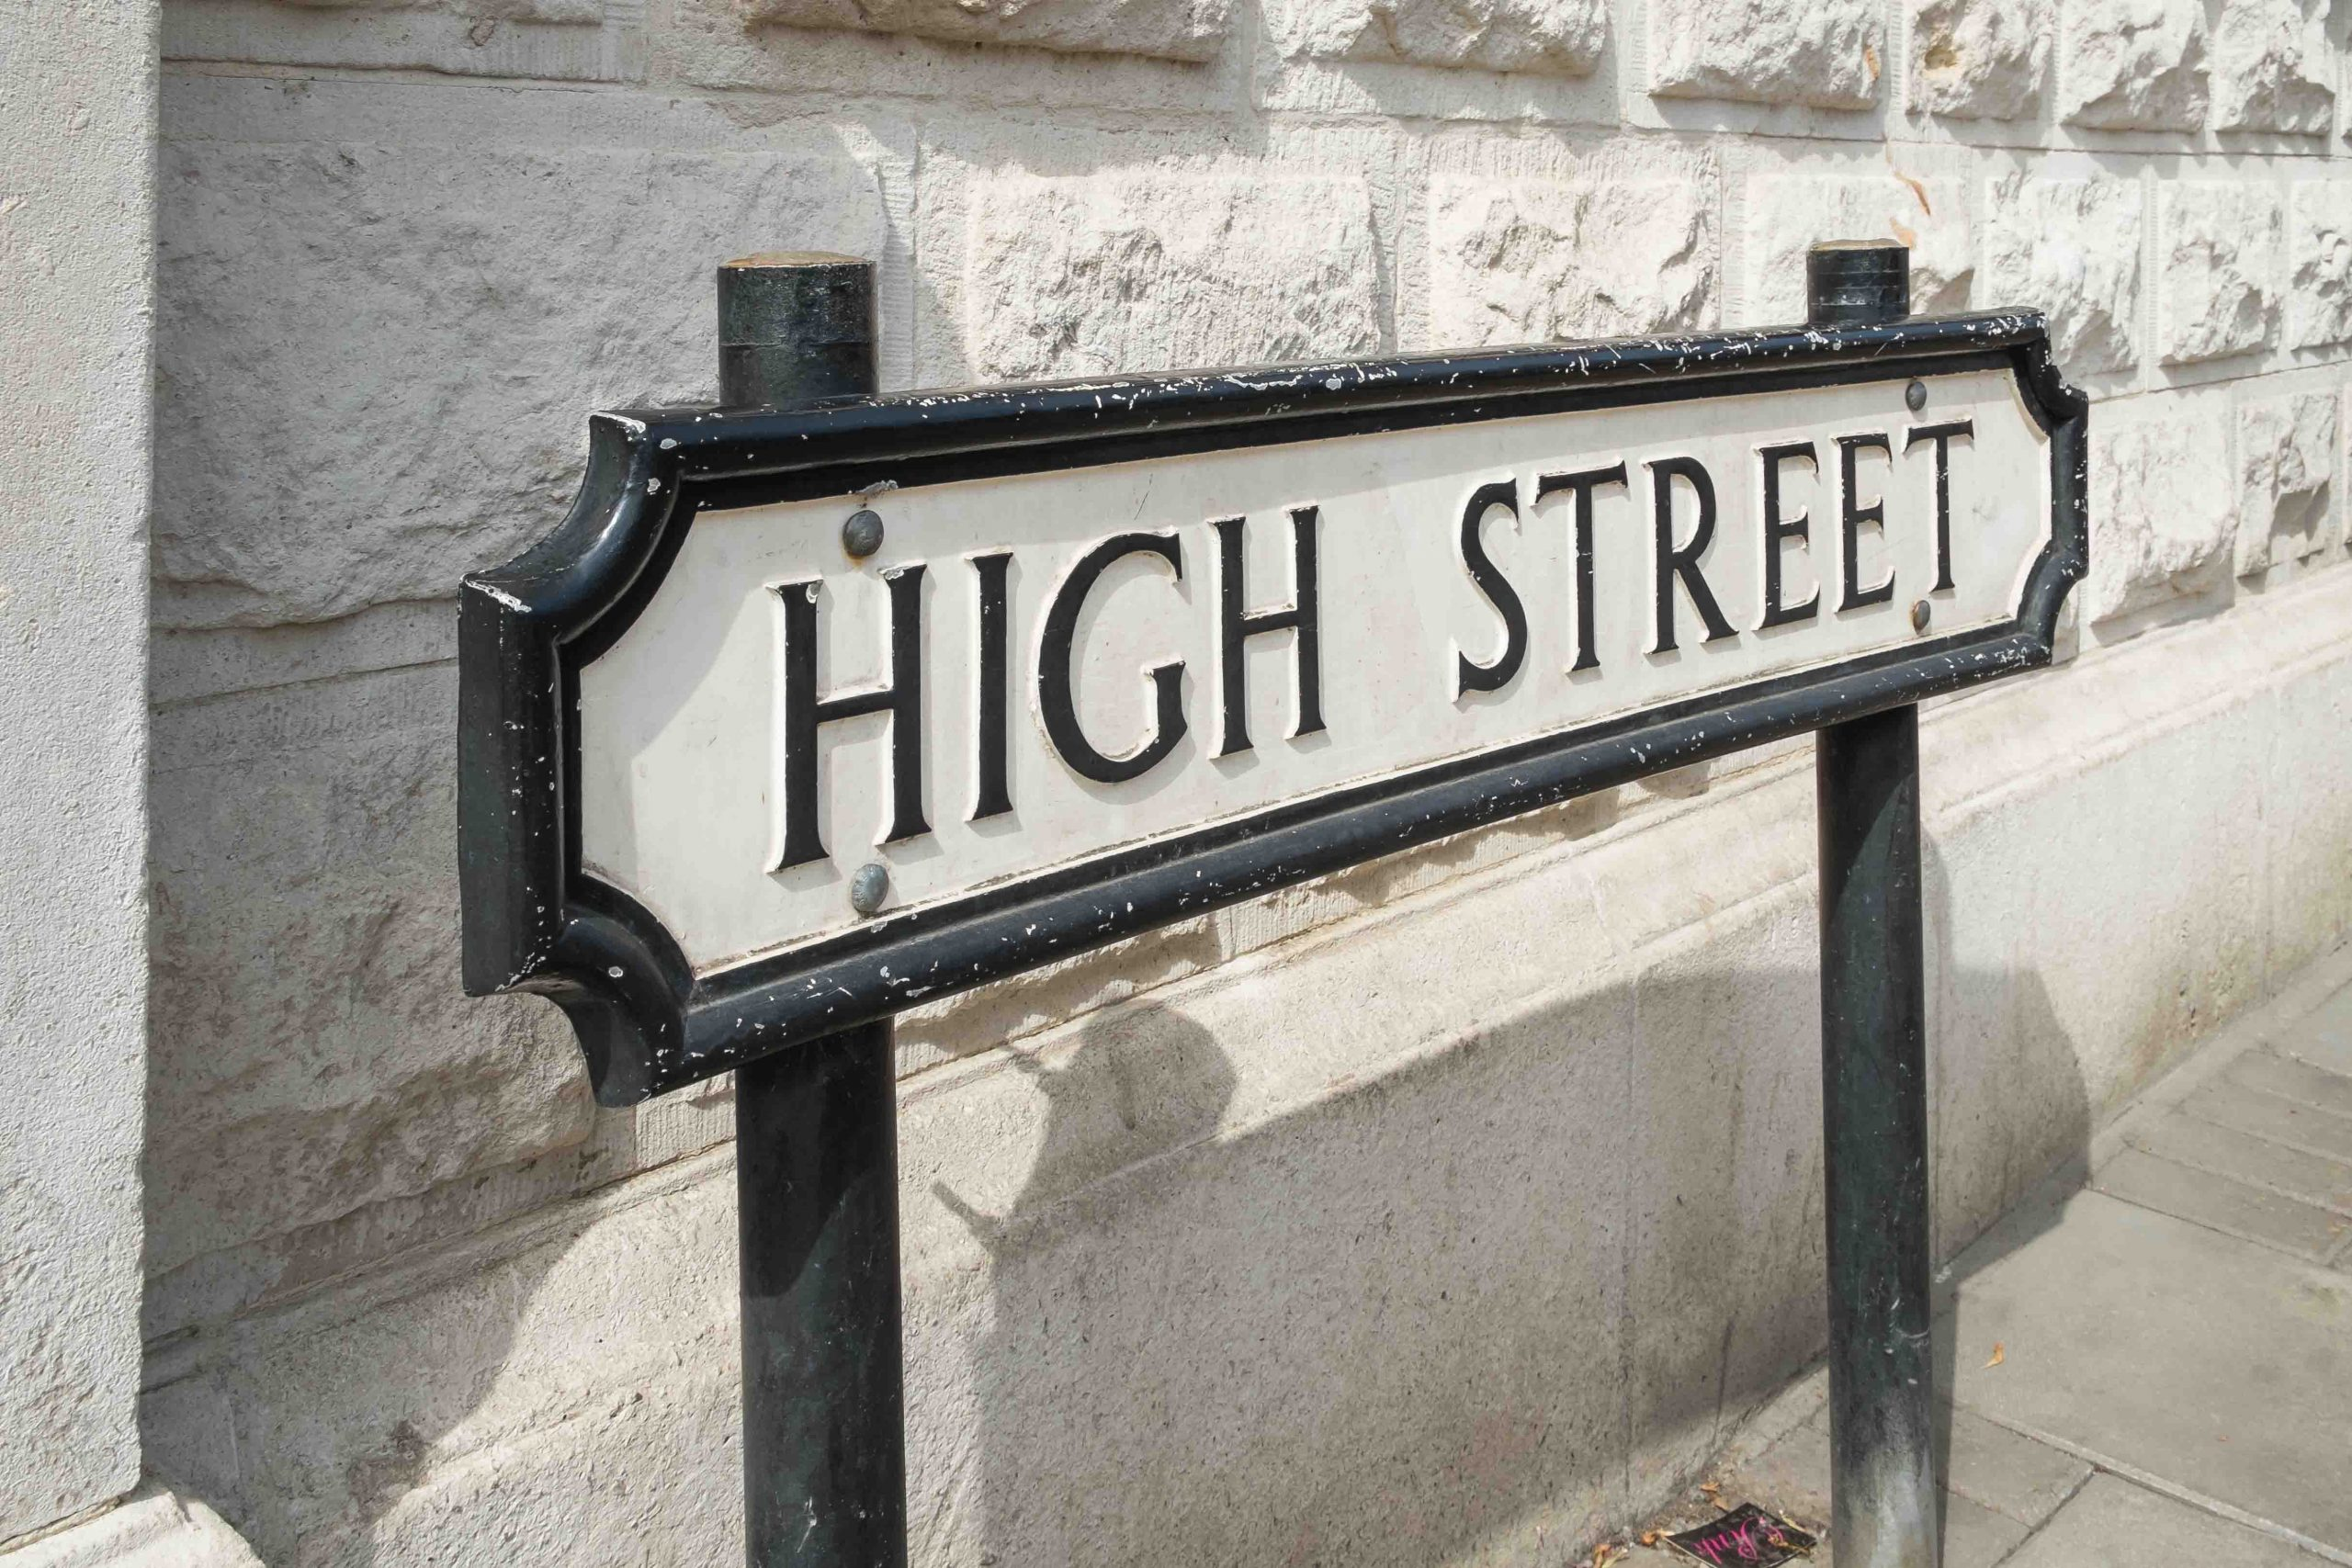 High street voucher scheme will come to fruition – soon, says new Economy Minister